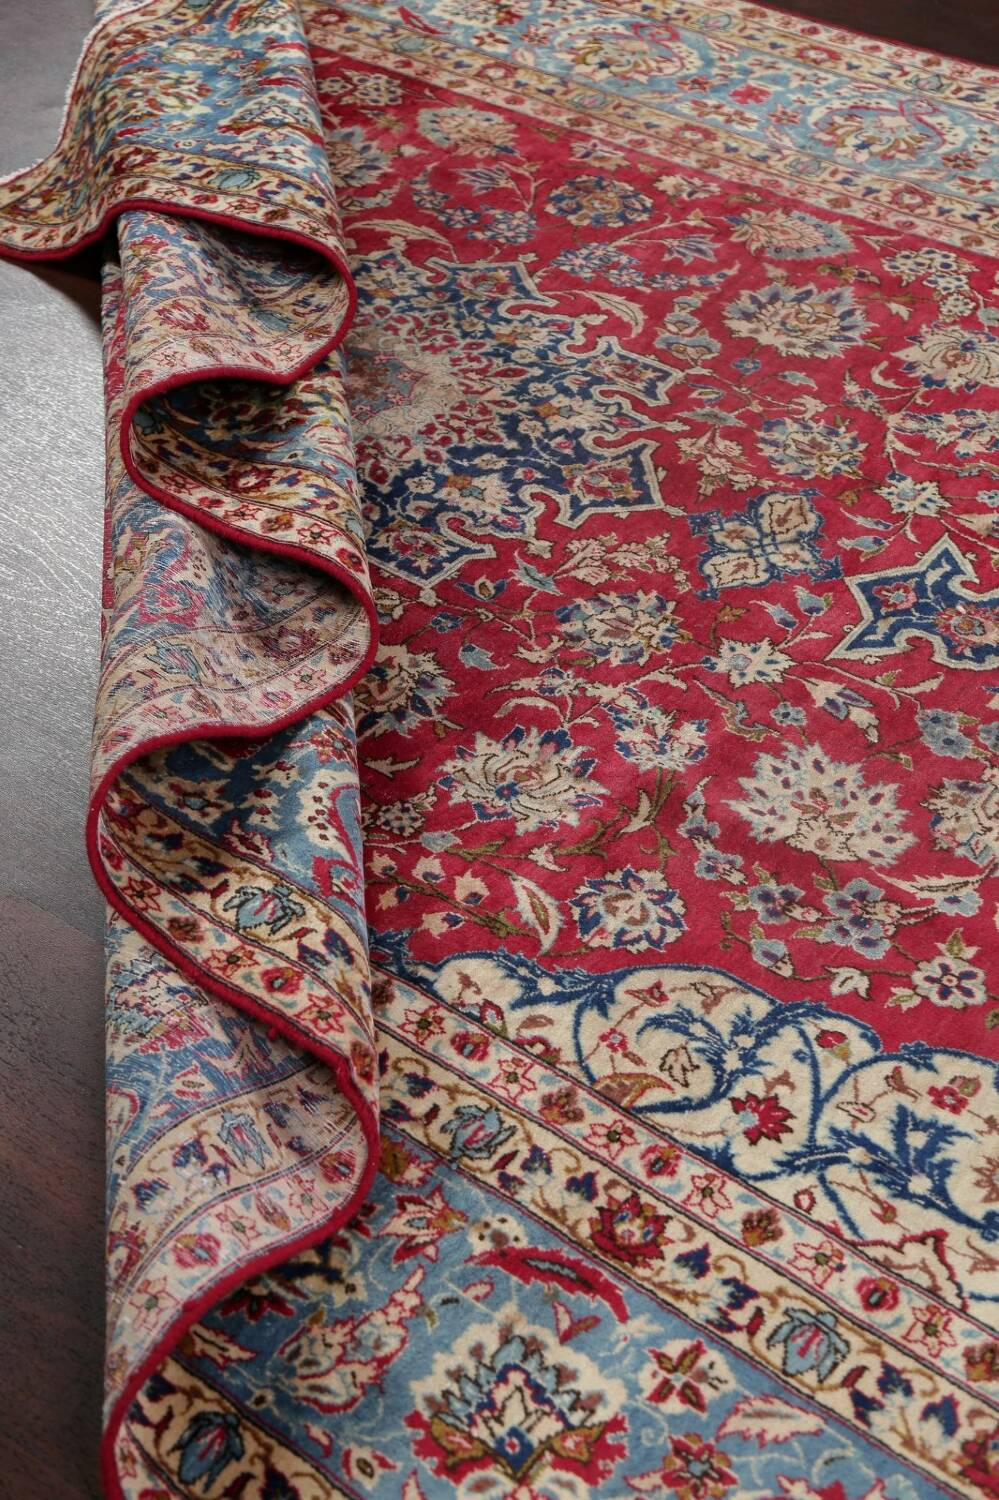 Floral Red Najafabad Persian Area Rug 8x13 image 22